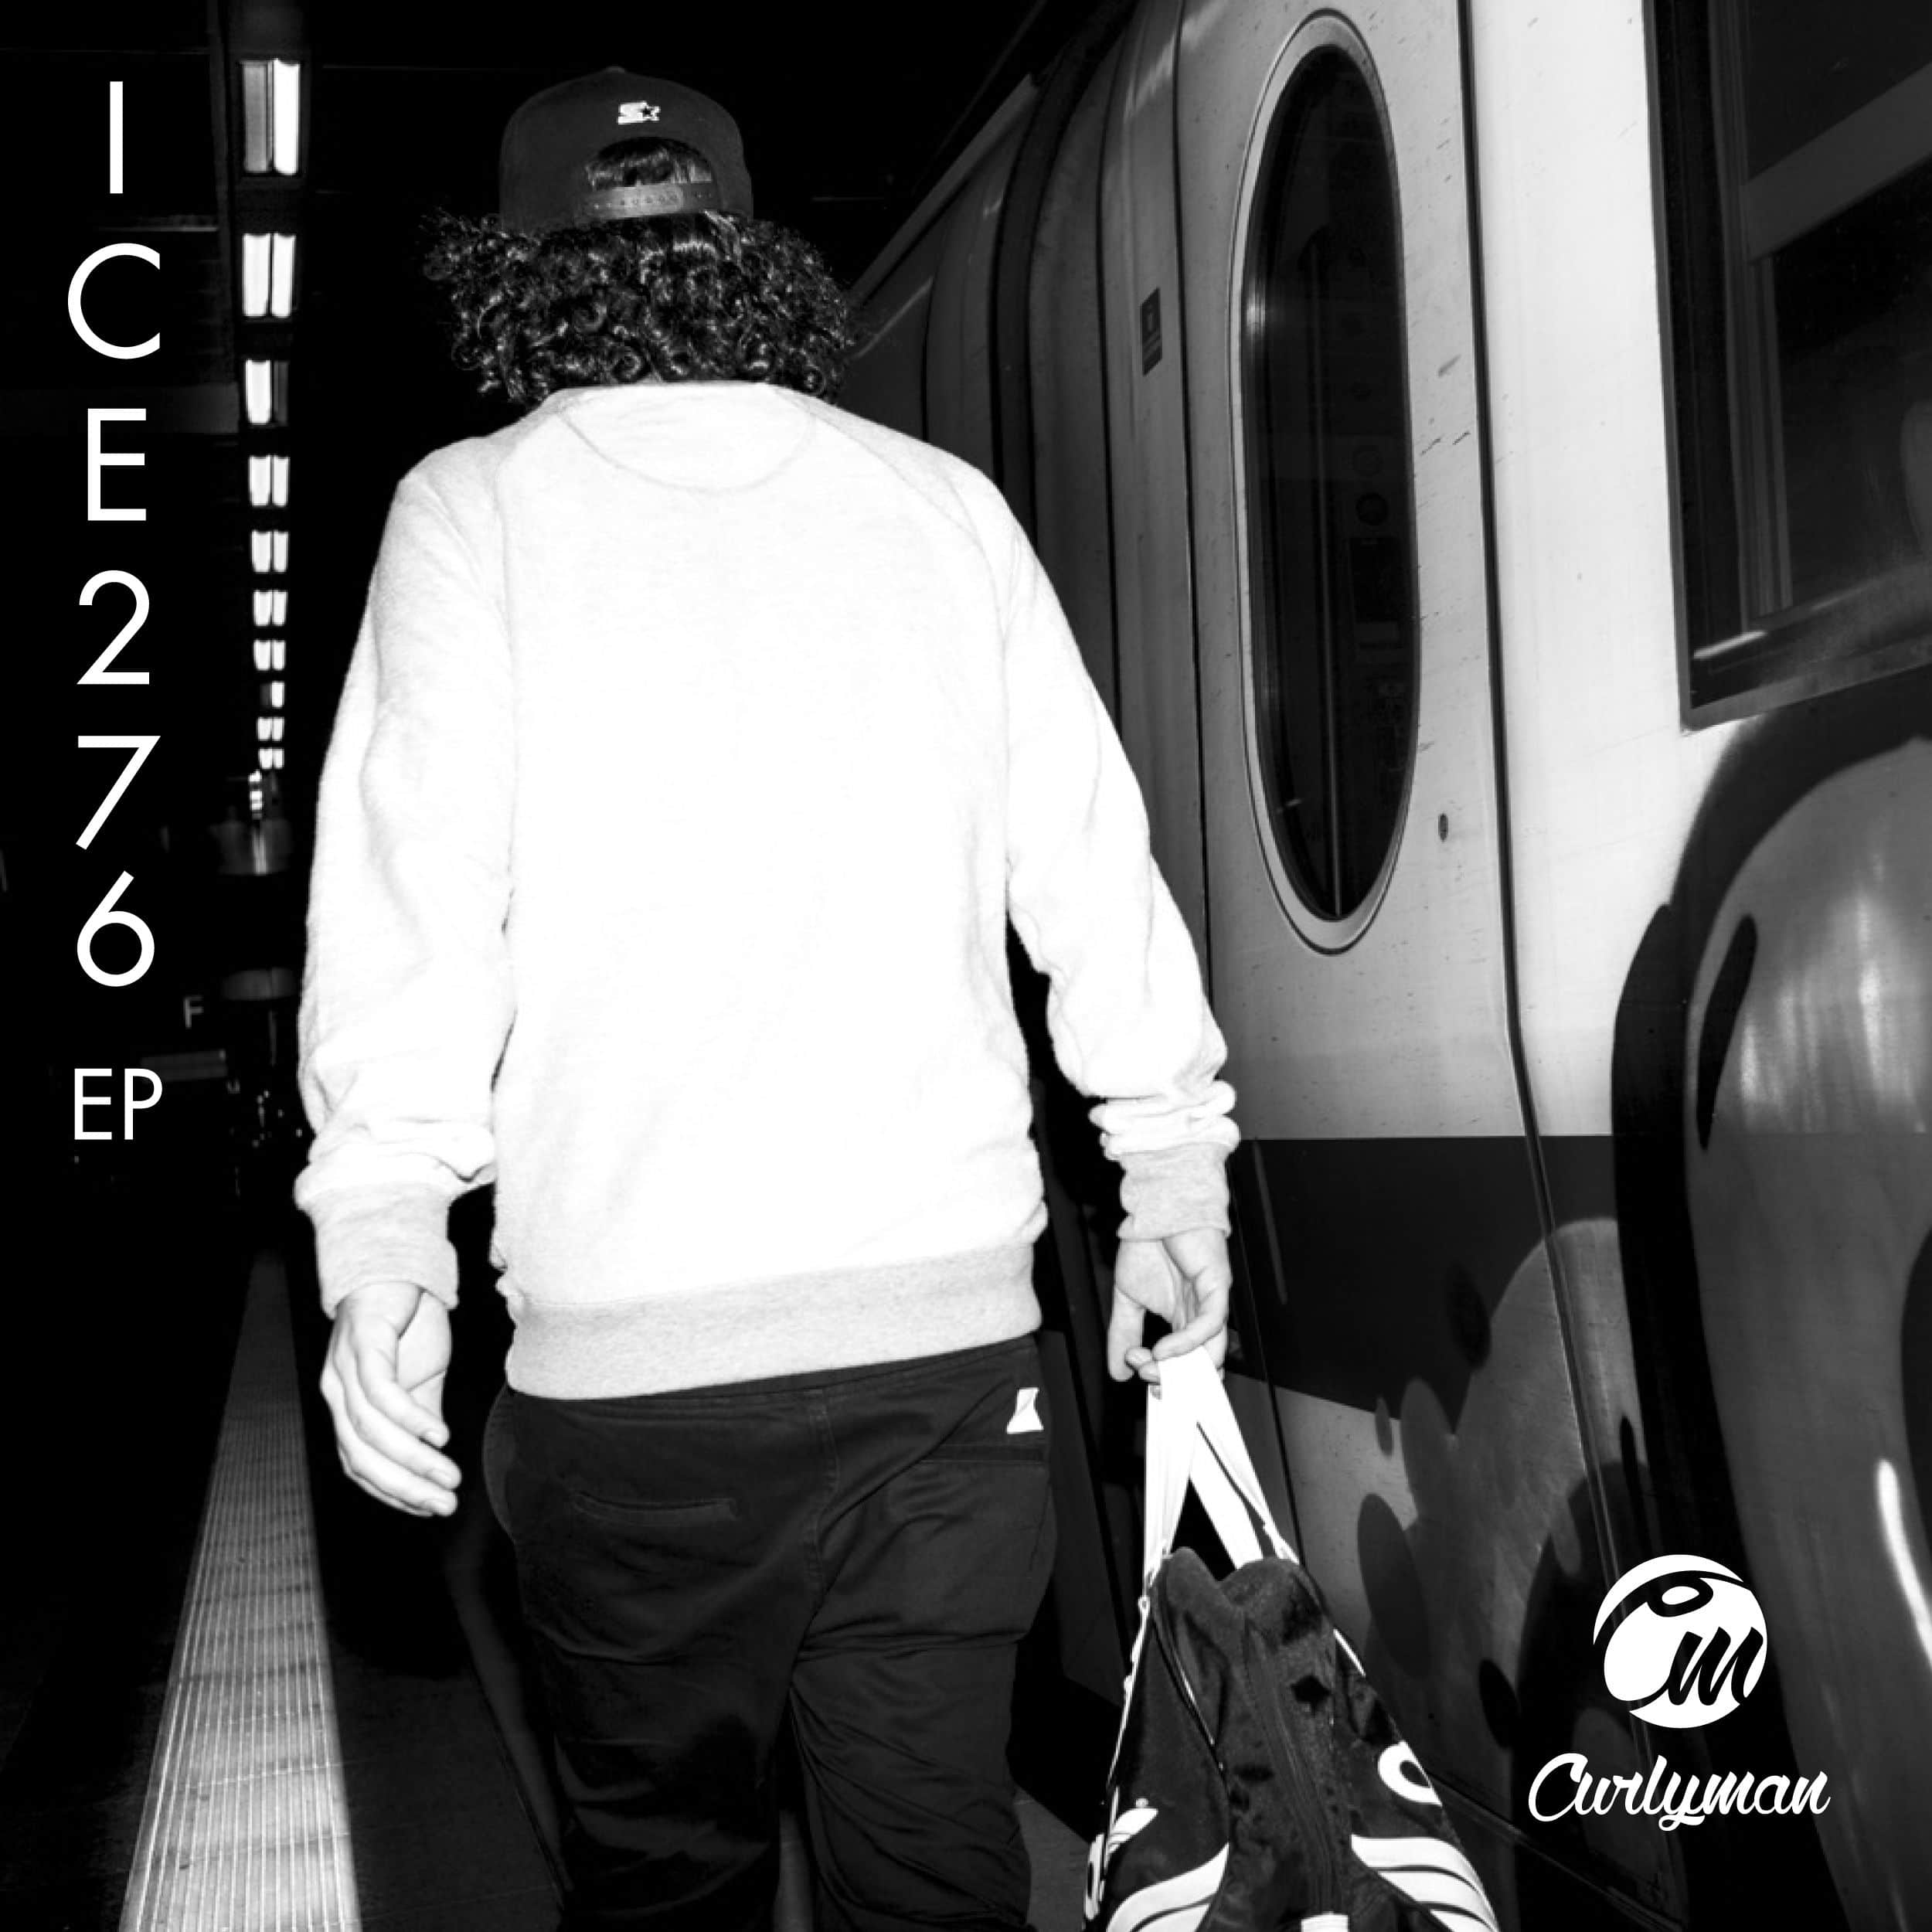 Curlyman – ICE 276 EP Album Cover